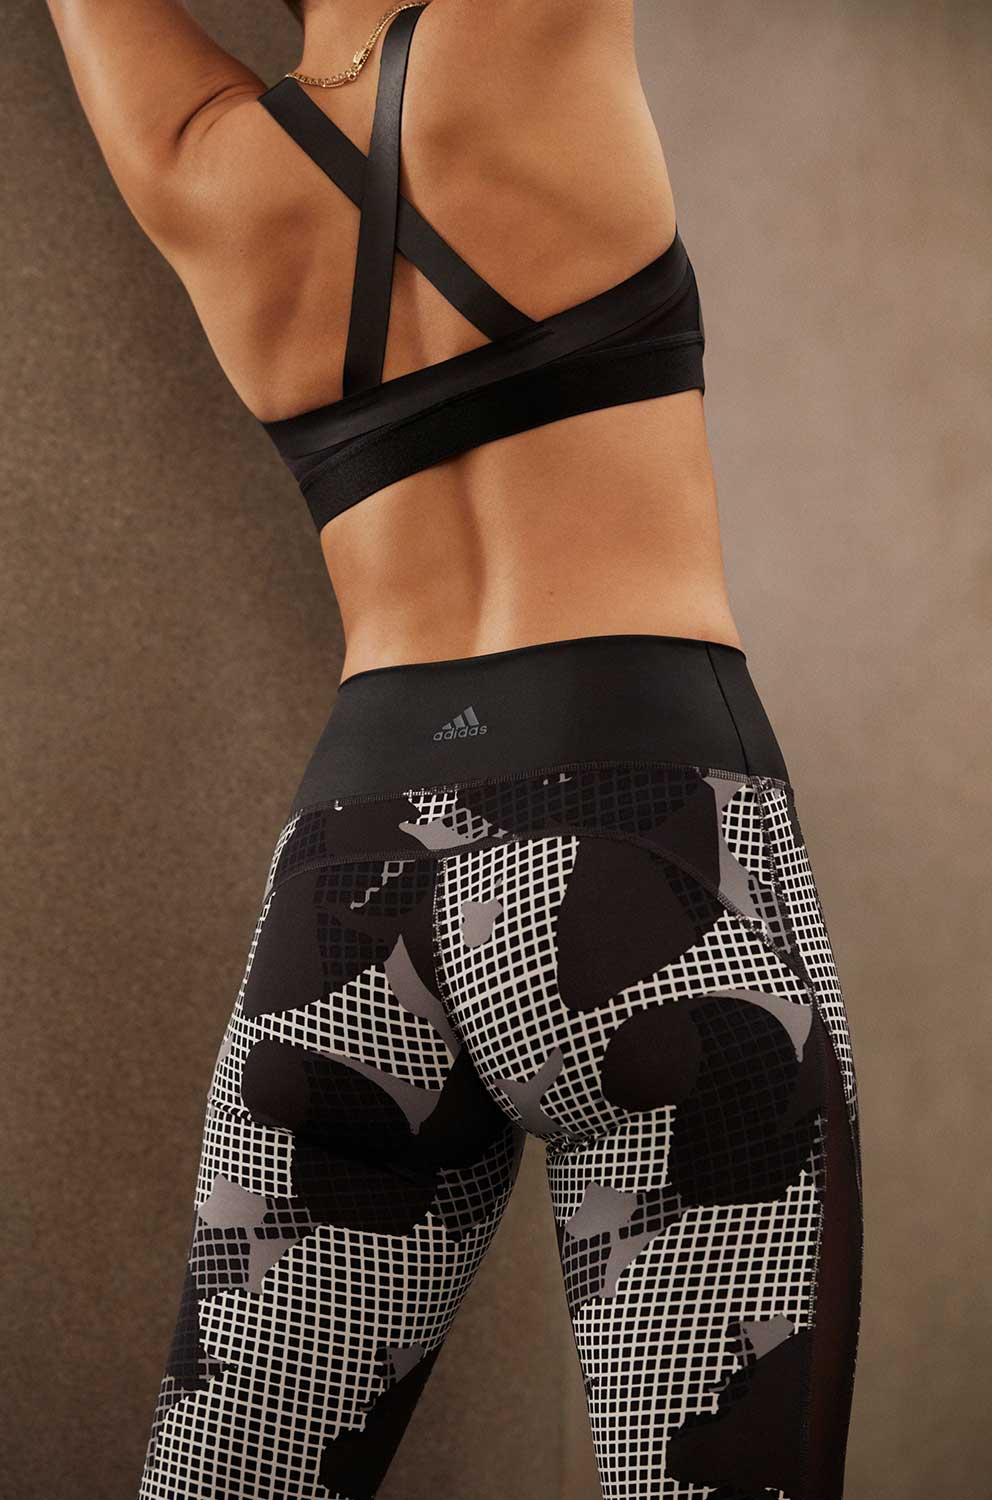 LEGGINSY DAMSKIE ADIDAS BELIVE THIS HIGH RISE TIGHT CX0011